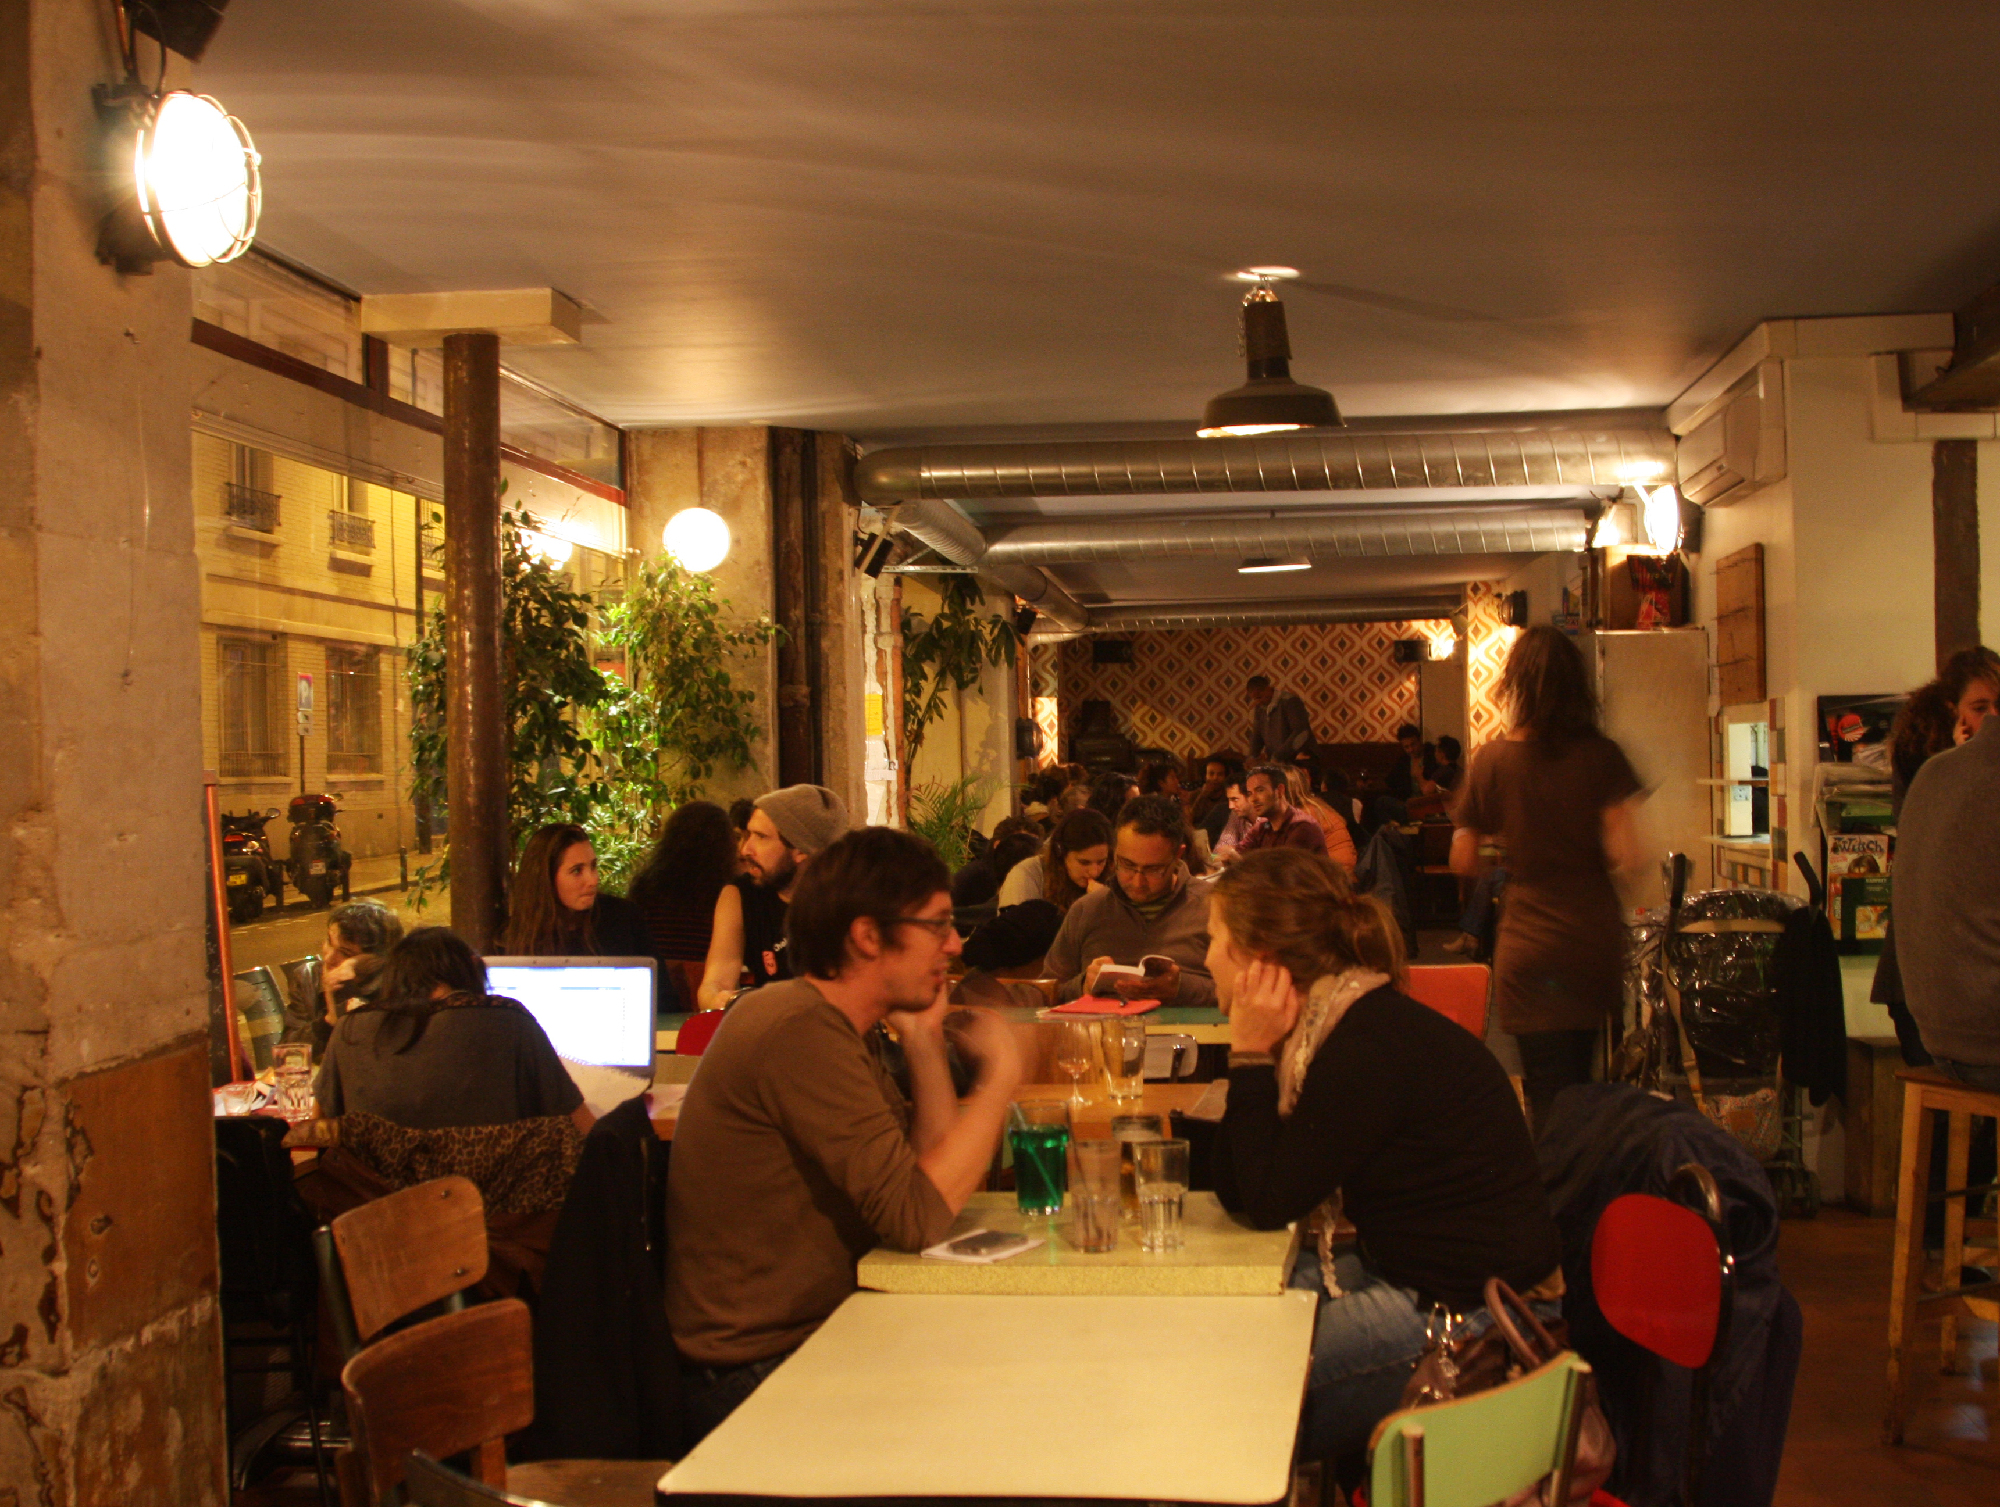 Les p res populaires bars and pubs in nation paris for Bar exterieur paris